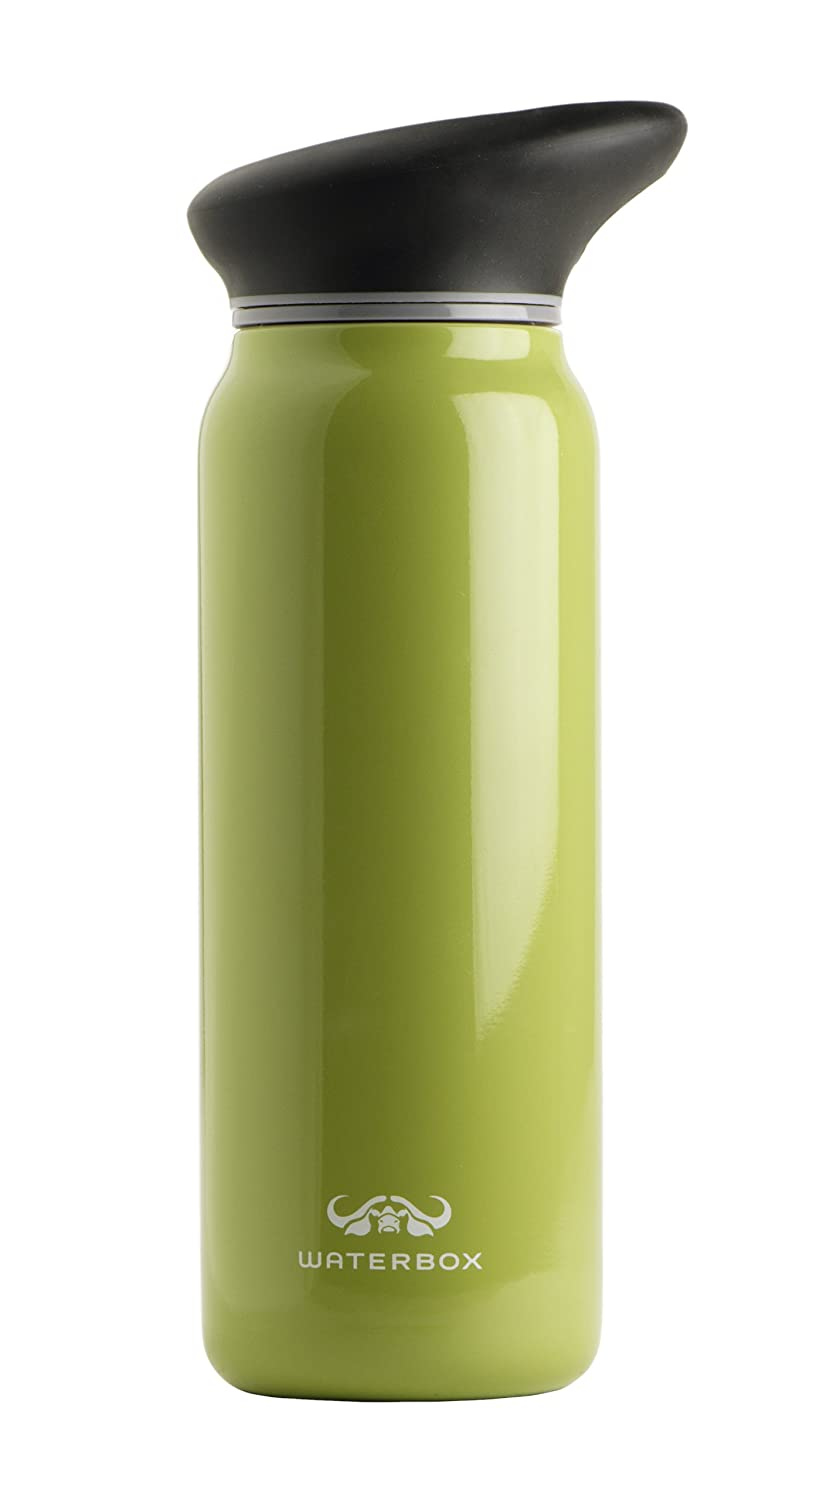 Amazon.com : Waterbox Round Stainless Steel Water Bottle (Citron ...